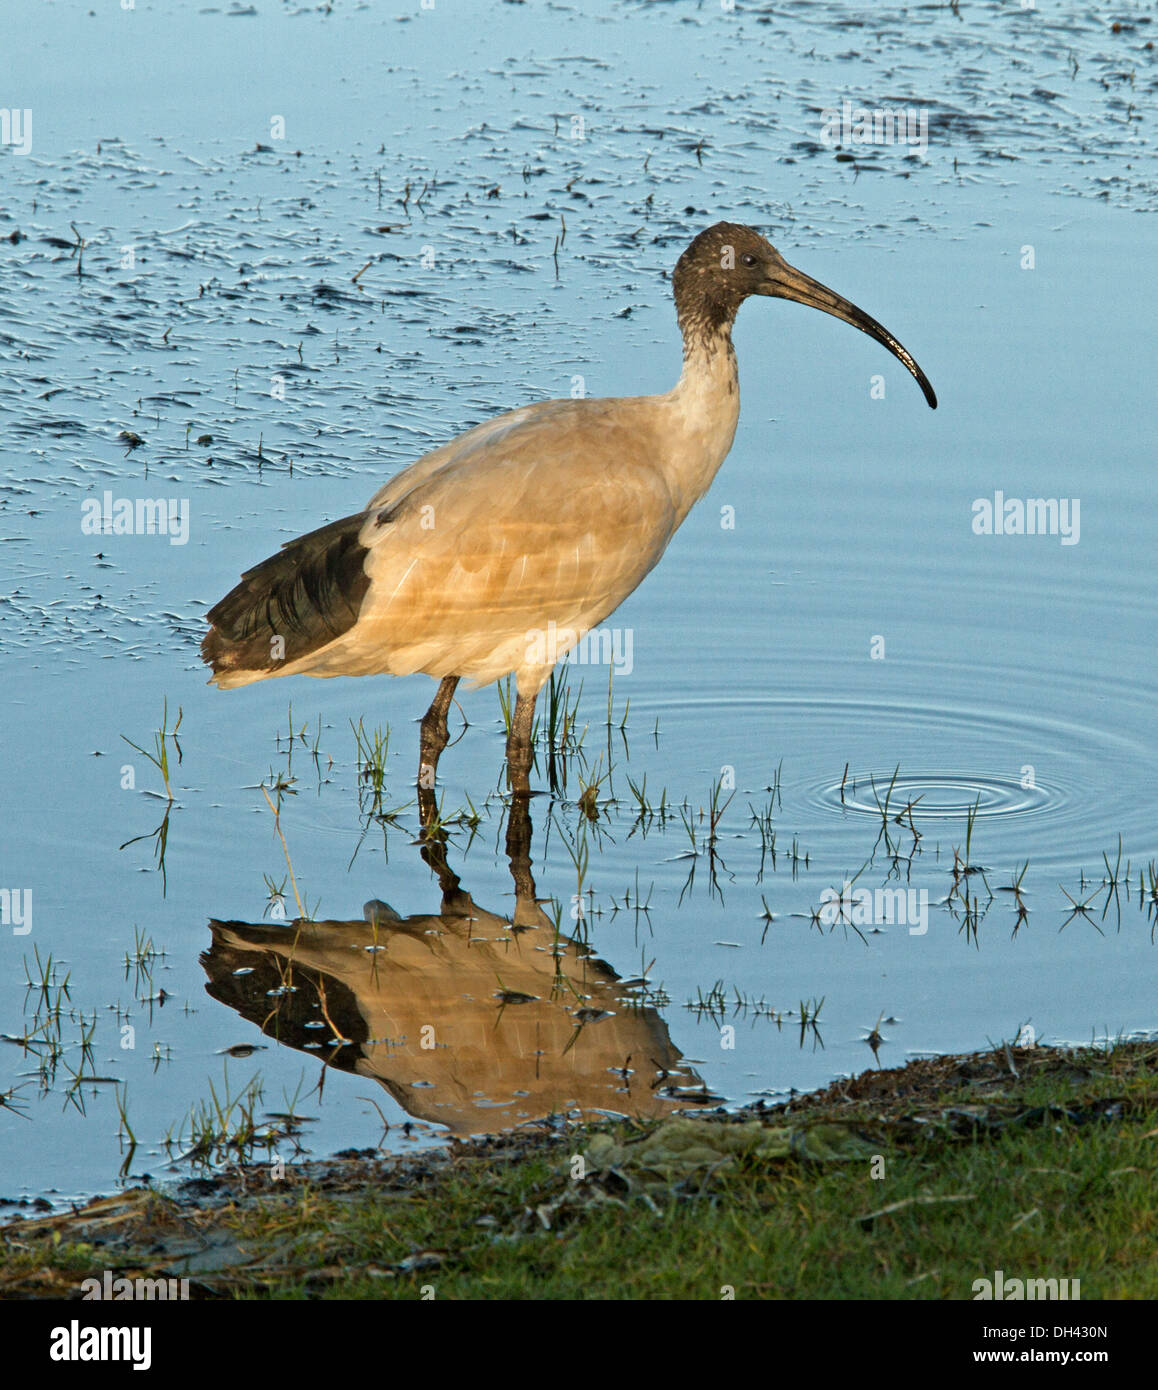 White ibis,threskiornis molucca, wading and reflected in calm blue water of lake at Nambucca Heads northern NSW Australia - Stock Image